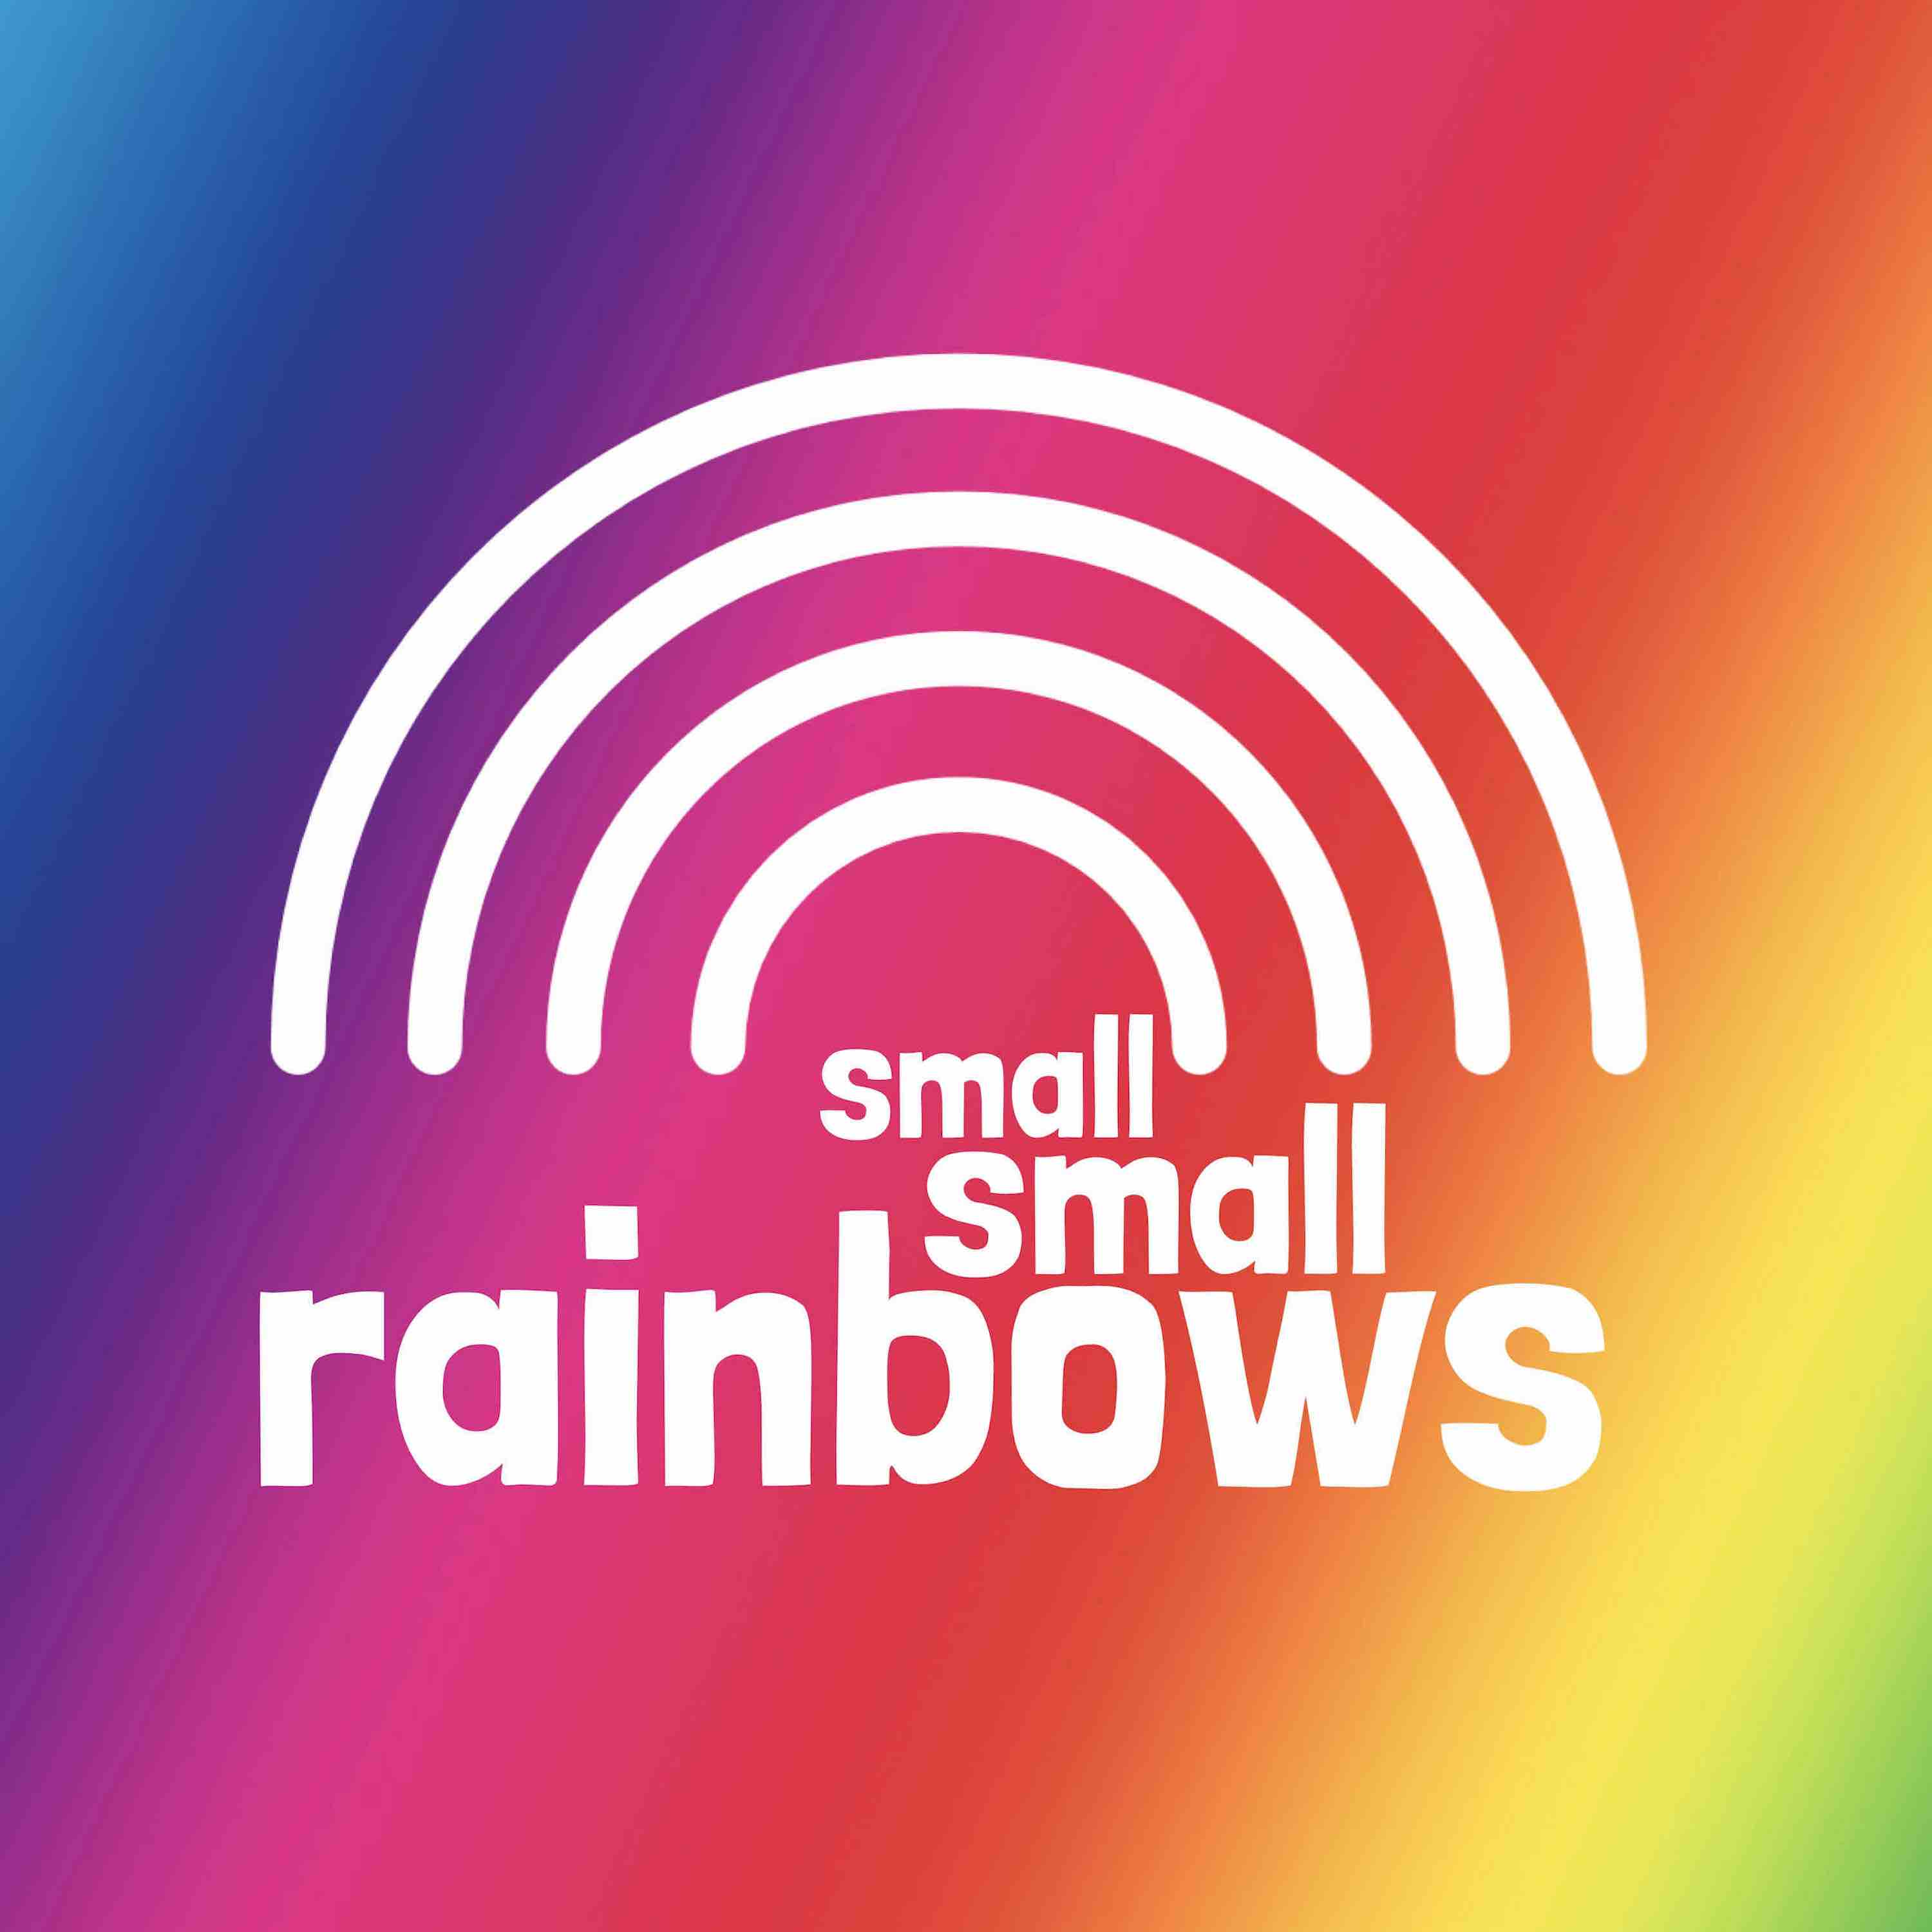 Show artwork for small small rainbows